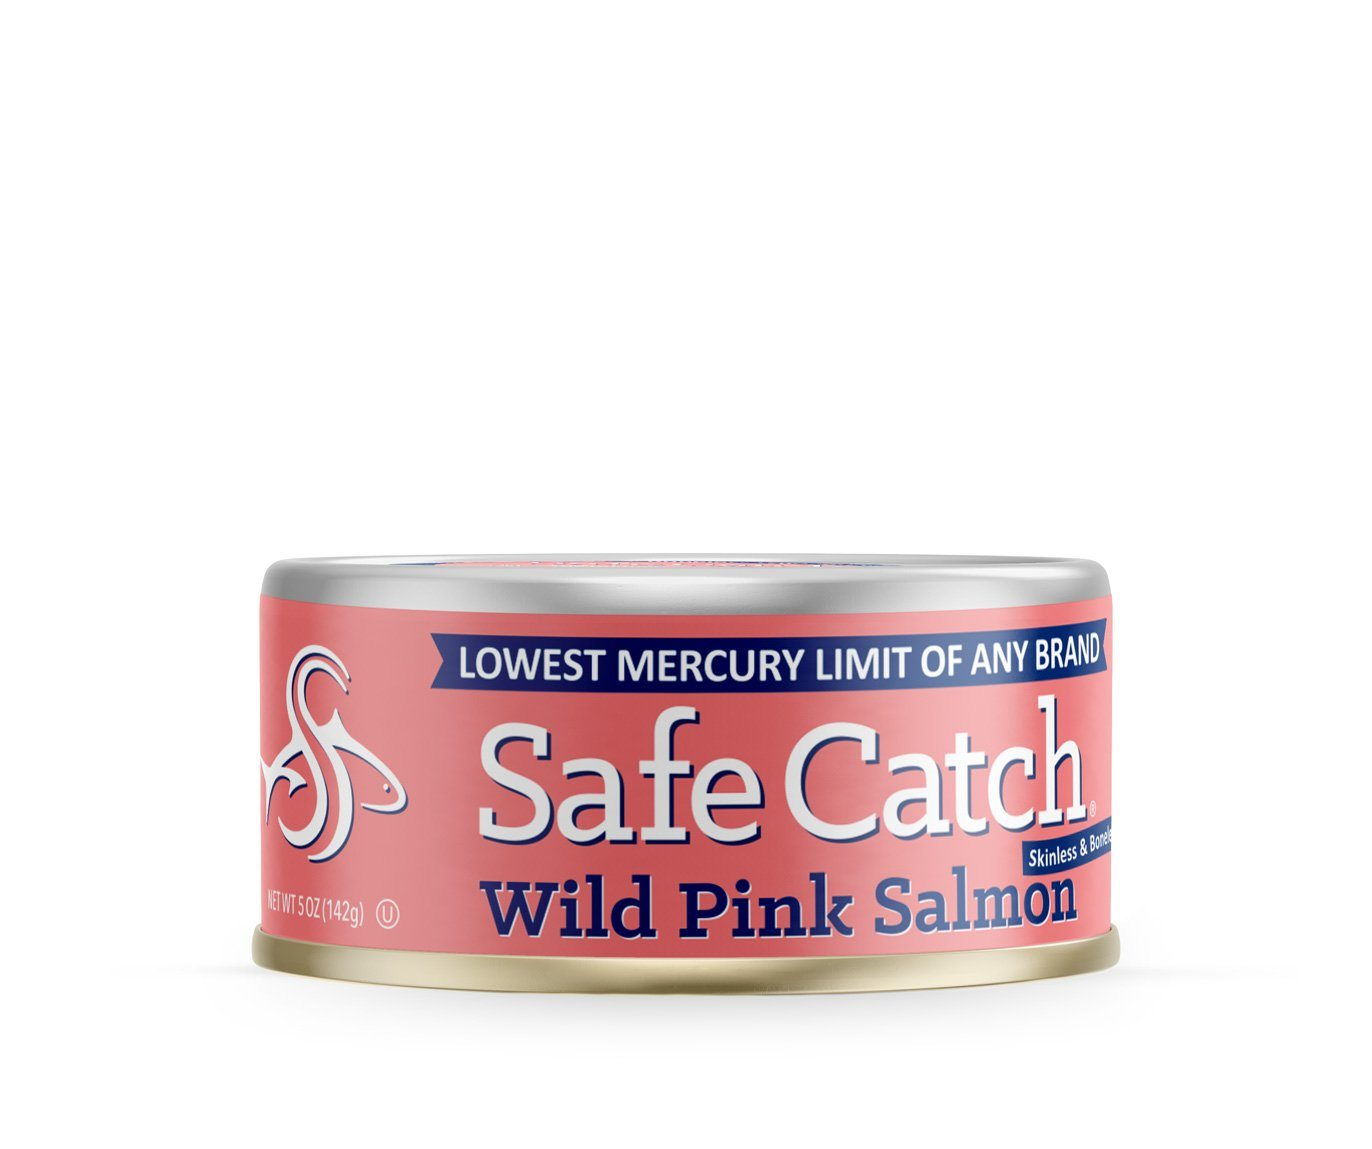 Food & Drink - Safe Catch - Alaskan Wild Pink Salmon, 142g